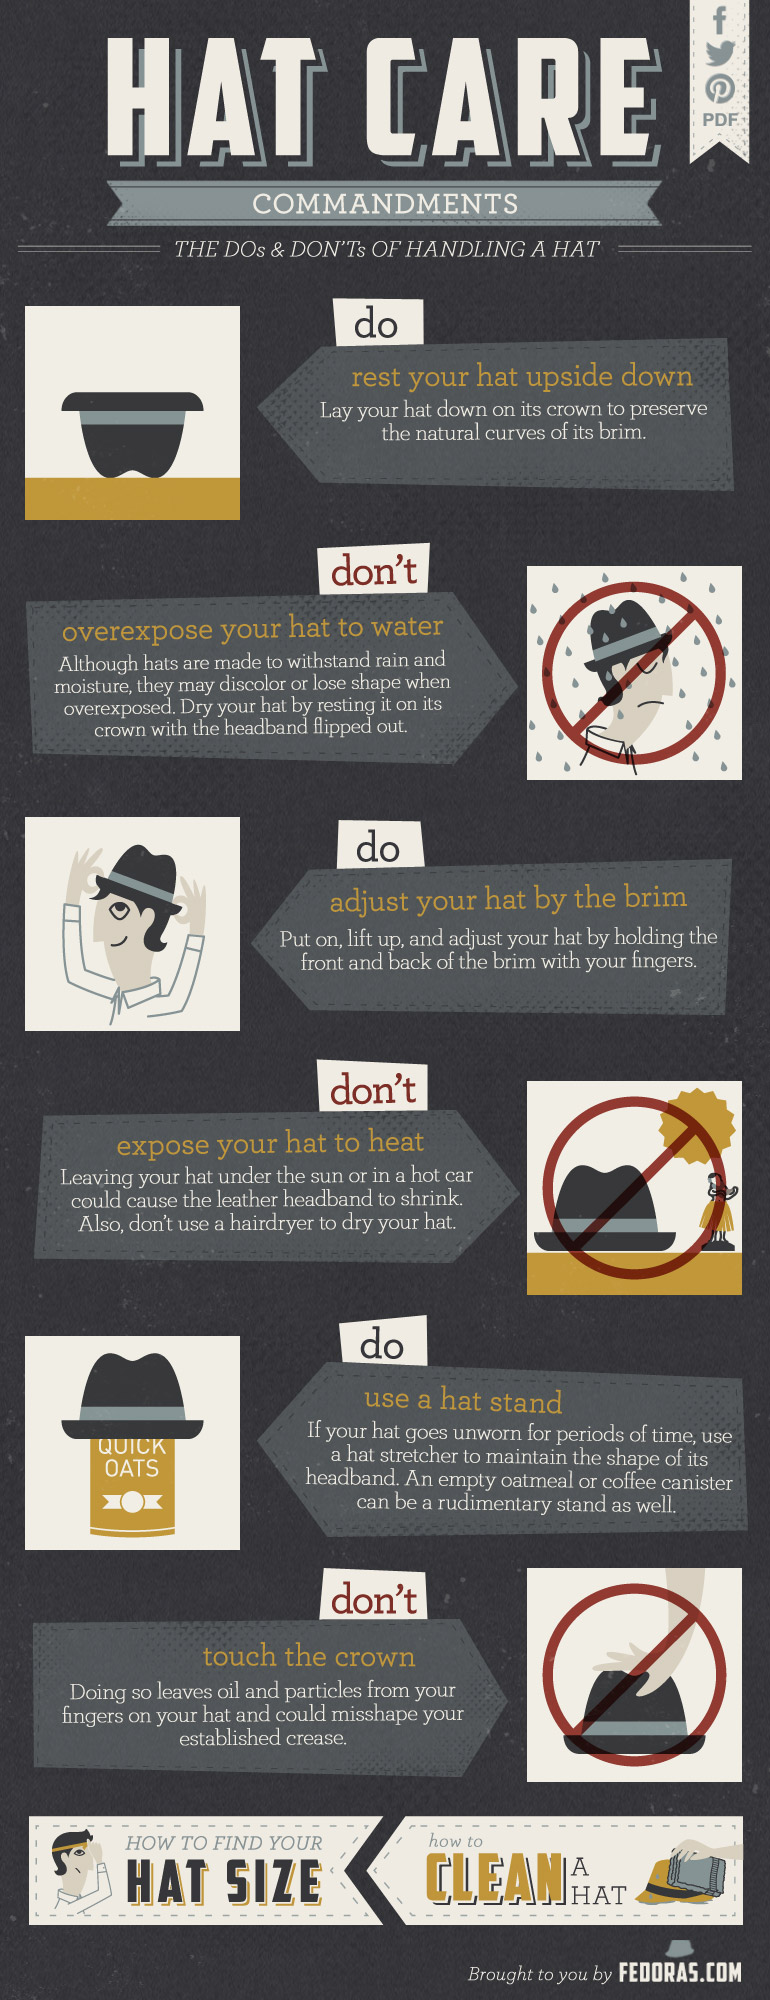 hat care commandments